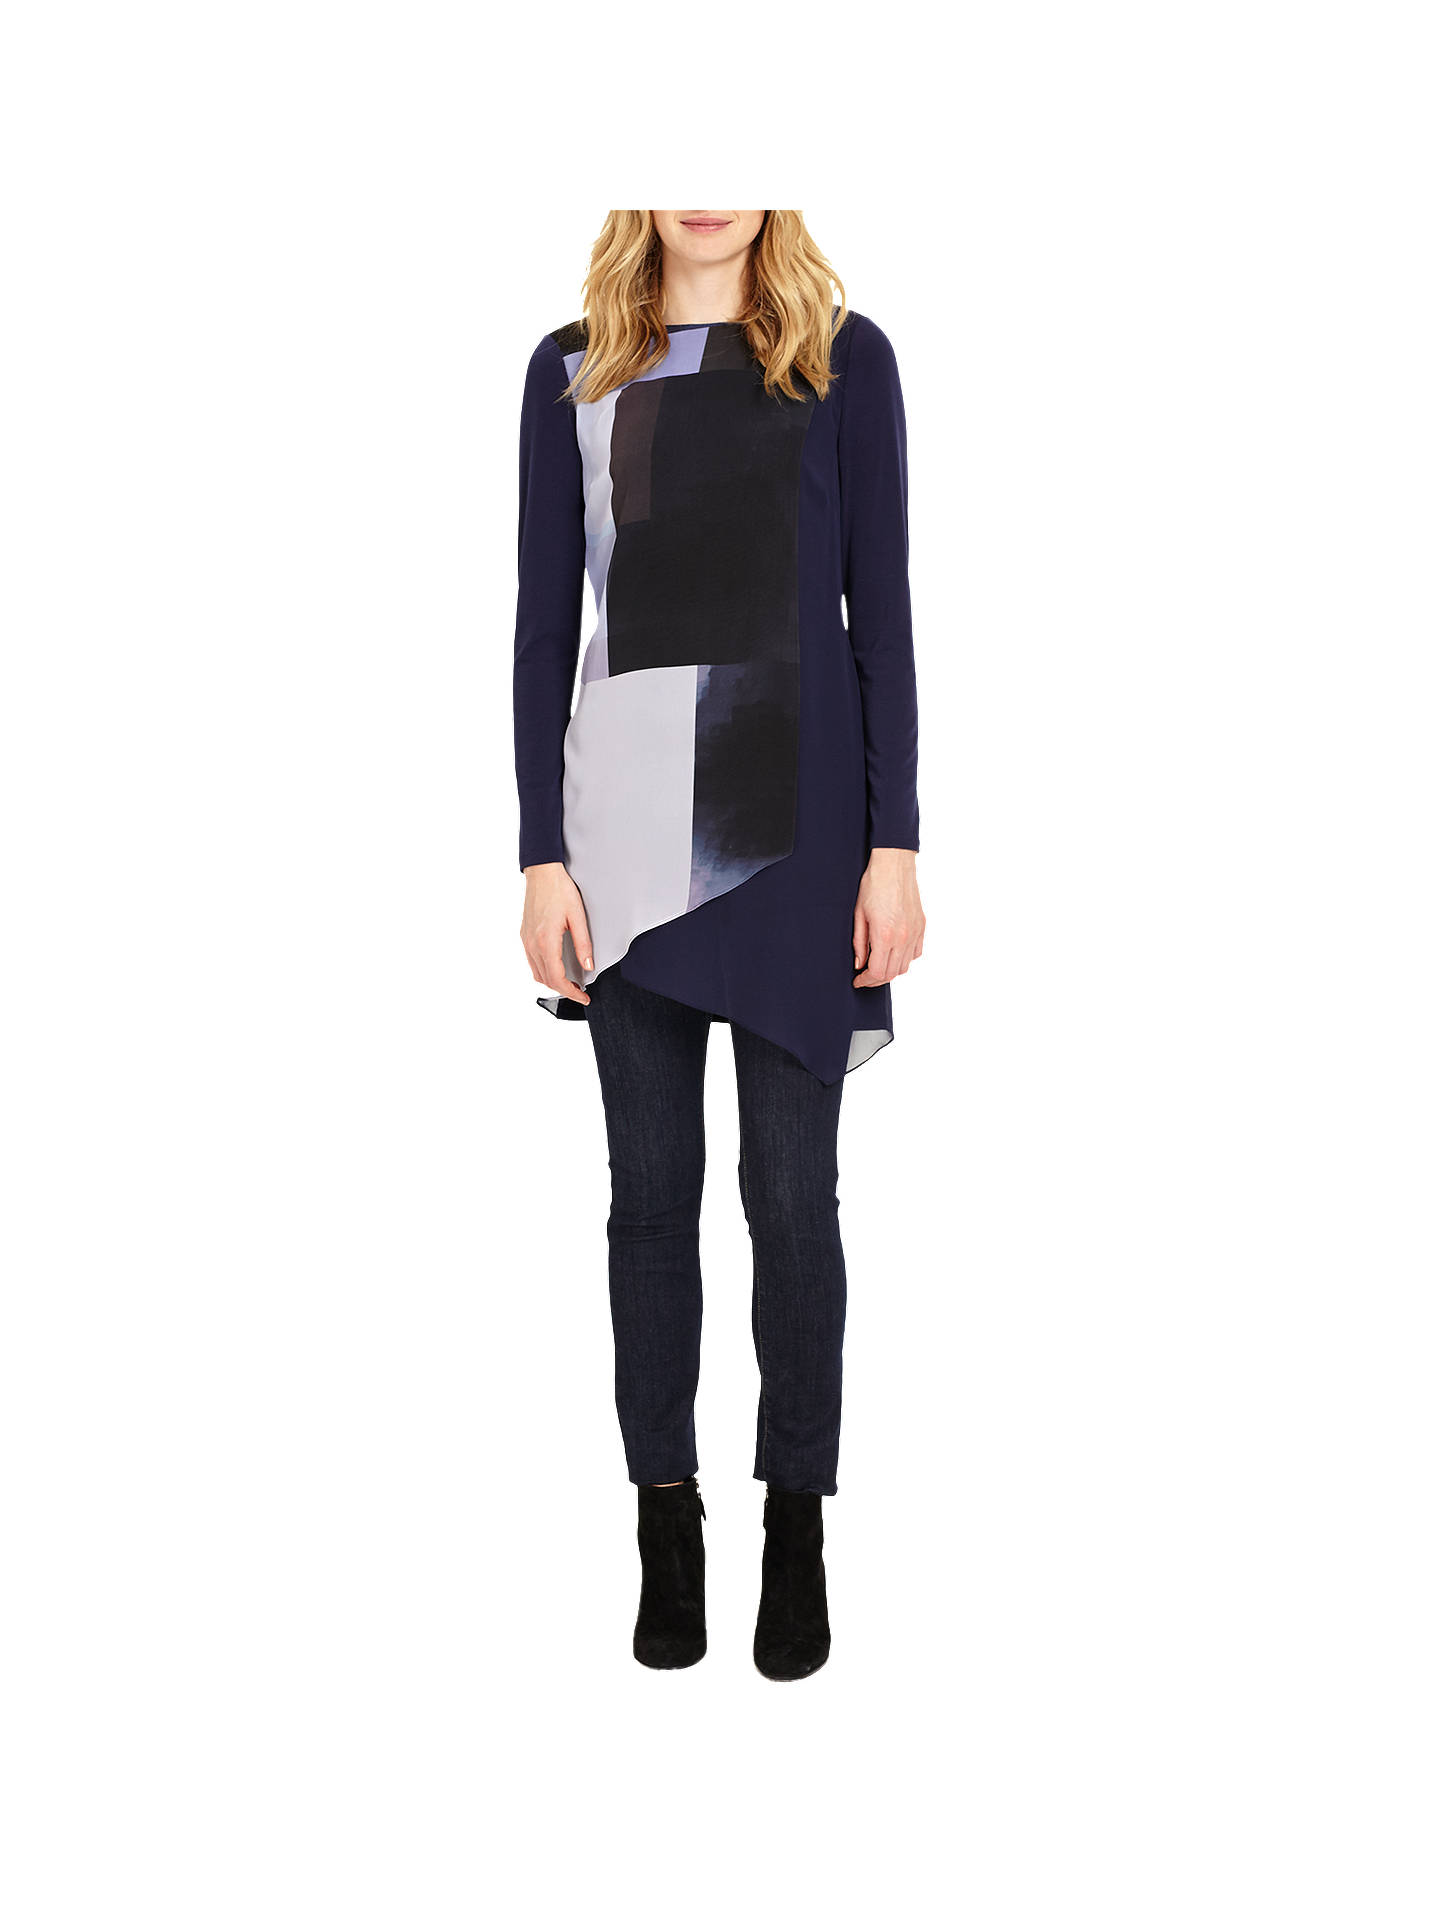 792a72b11dc ... Buy Phase Eight Vinny Colour Block Tunic, Navy, 8 Online at  johnlewis.com ...